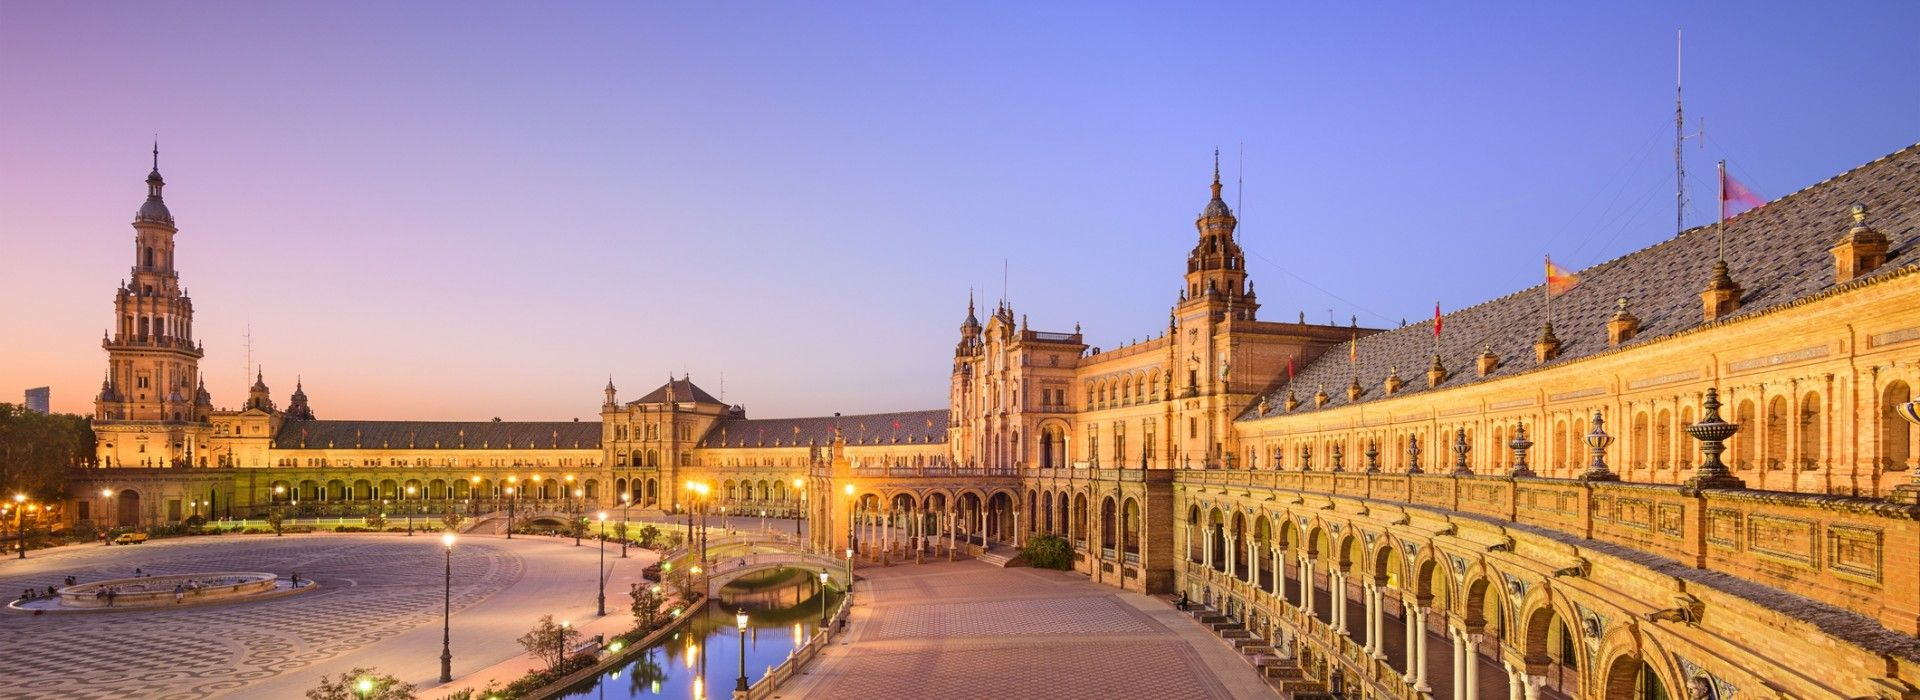 Beach, romance, getaways and relaxation Tours in Barcelona